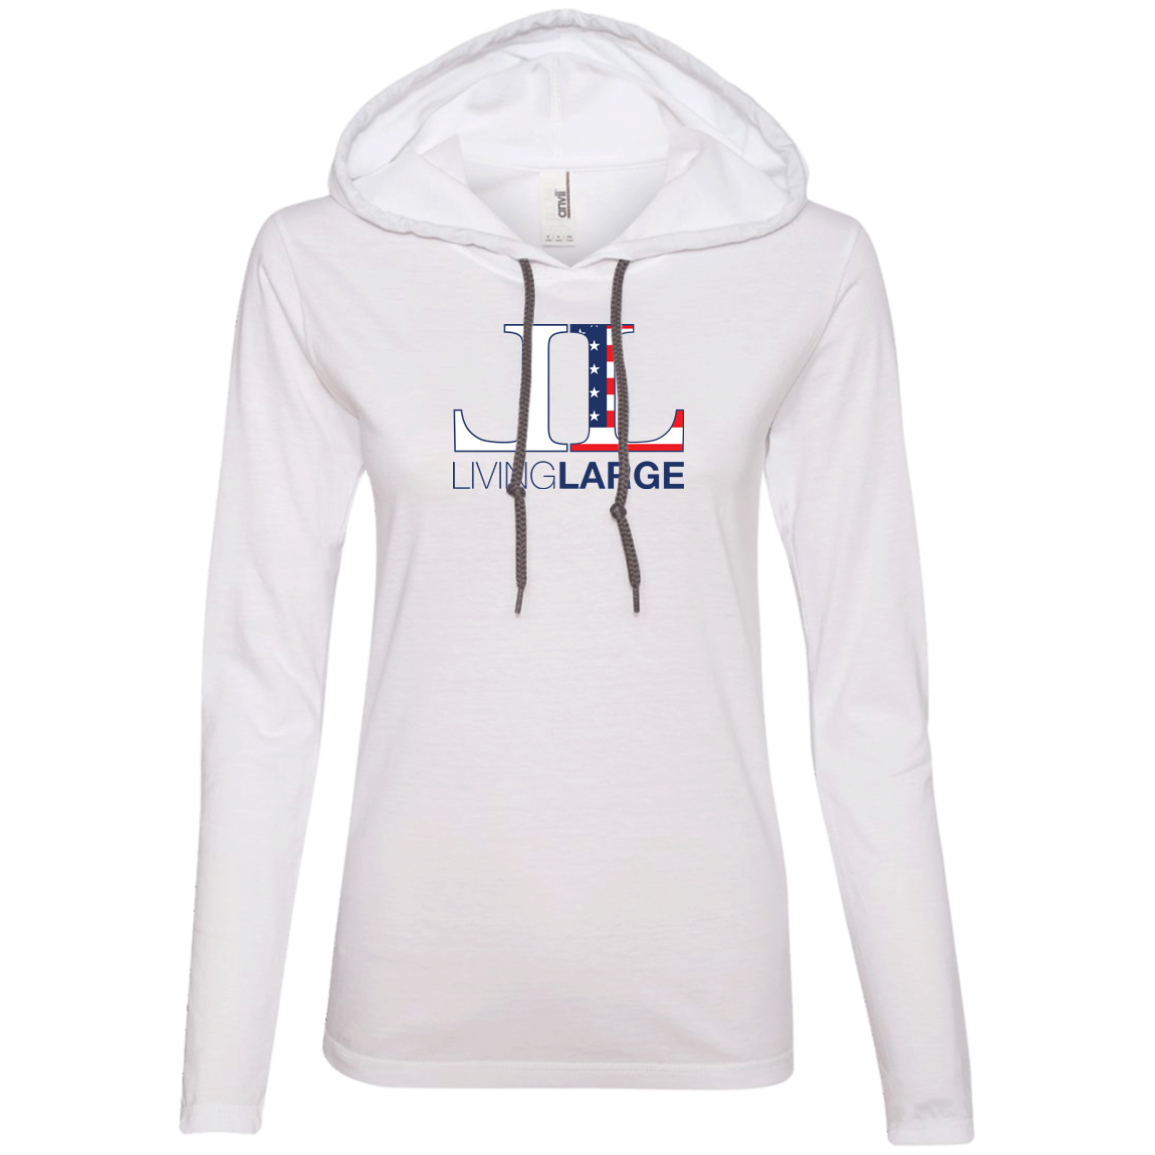 Living Large - The Edgy Ezra All American Women's Long Sleeve T-Shirt Hoodie